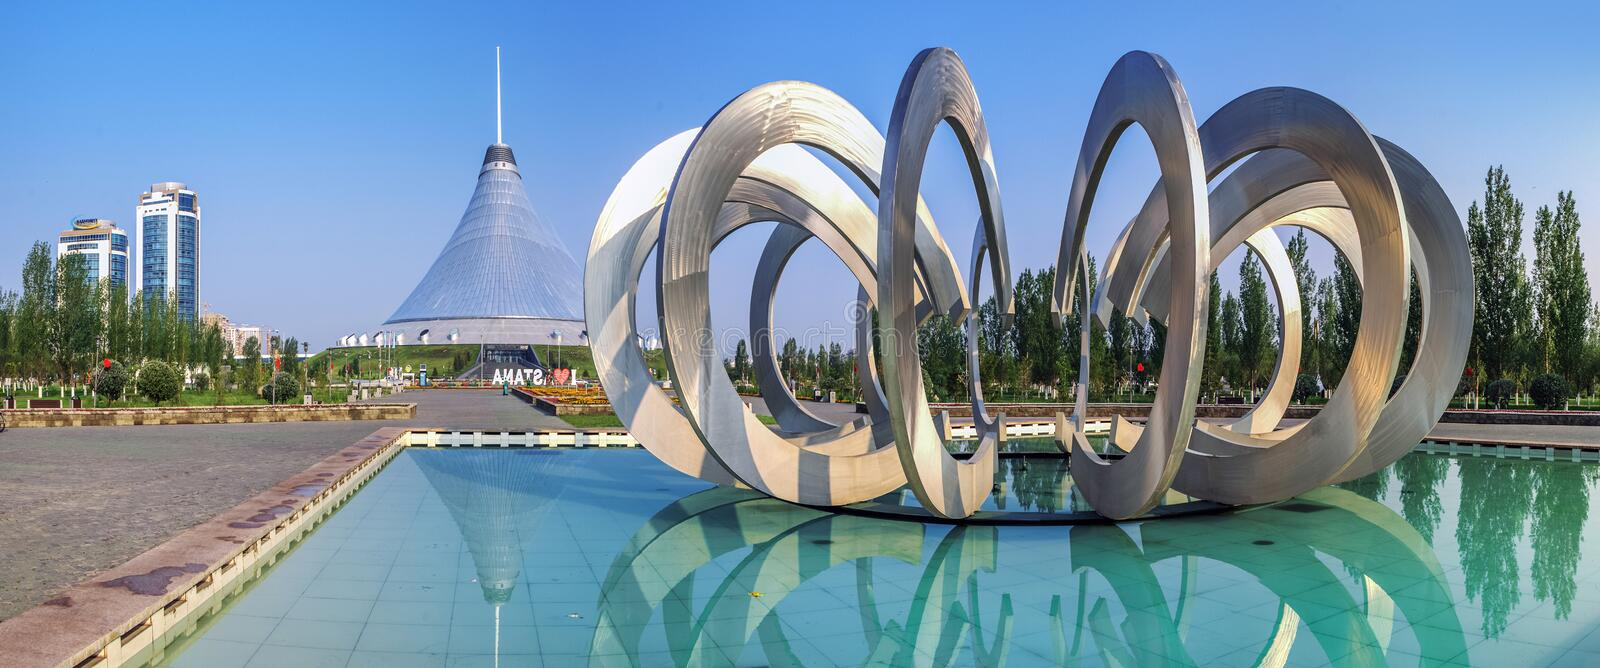 ASTANA, KAZAKHSTAN - JULY 7, 2016: Morning reflection in the Fountain of Love royalty free stock photo